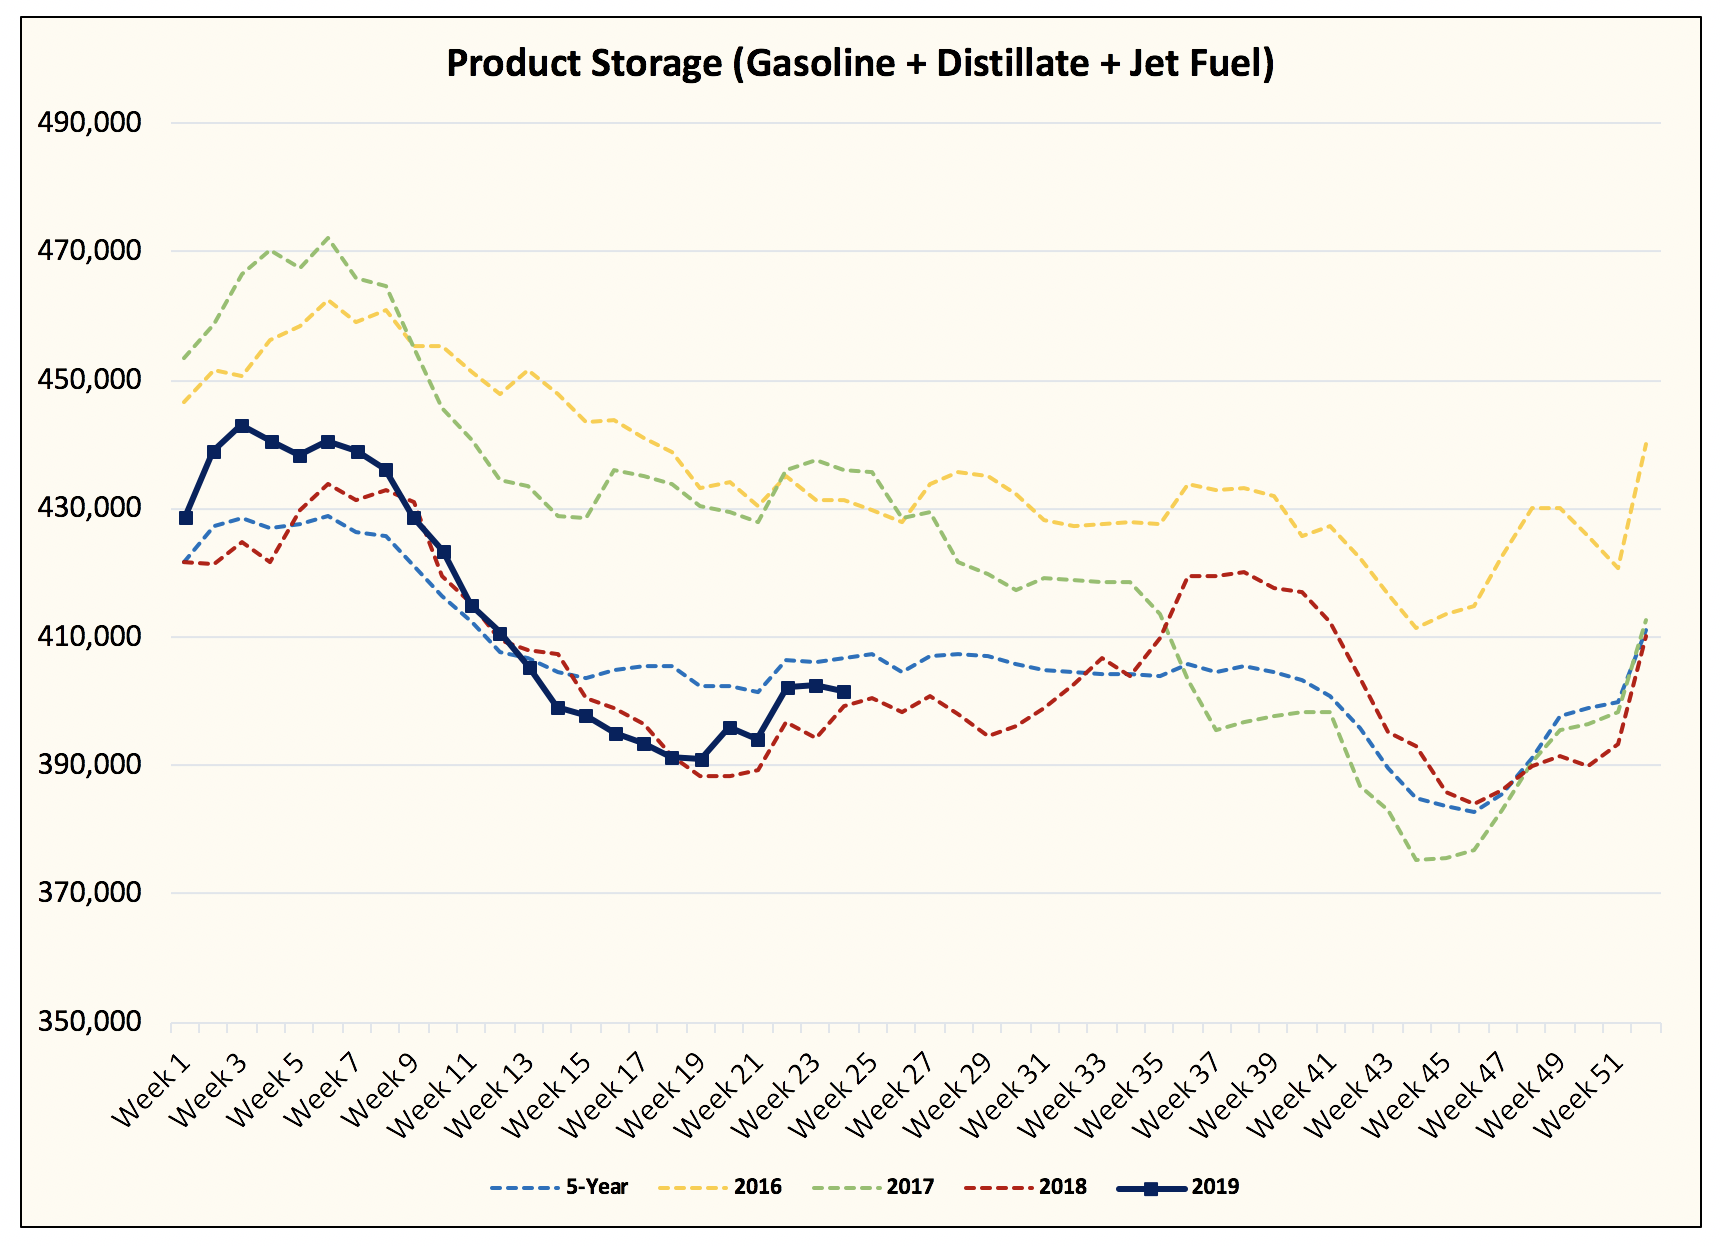 Oil - If Refinery Throughput Disappointed, Then Why Aren't Product Storage Lower?